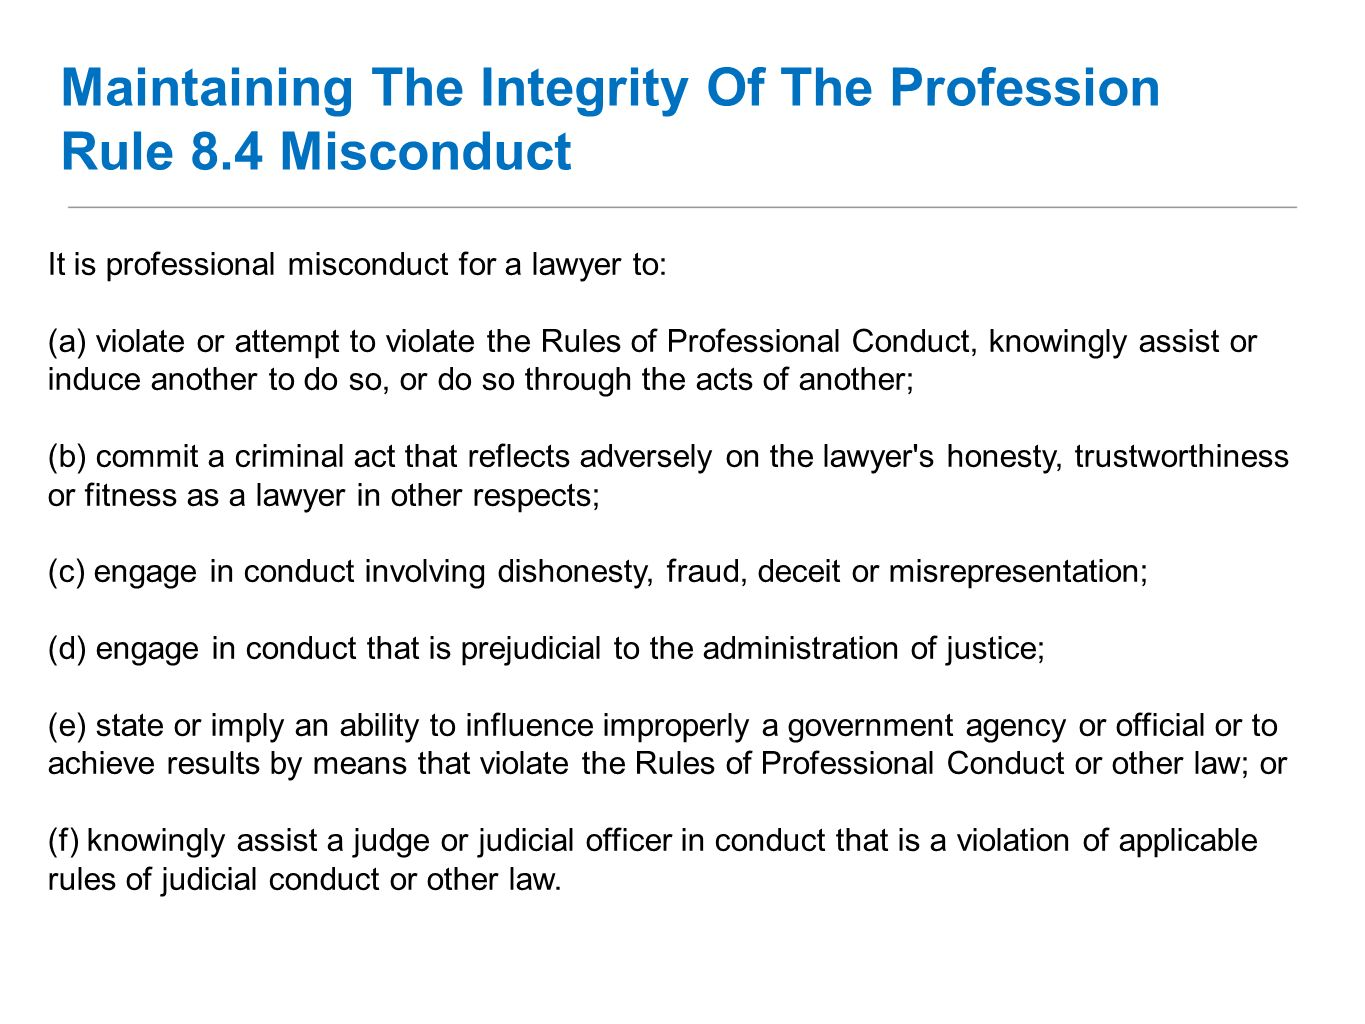 Maintaining The Integrity Of The Profession Rule 8.4 Misconduct